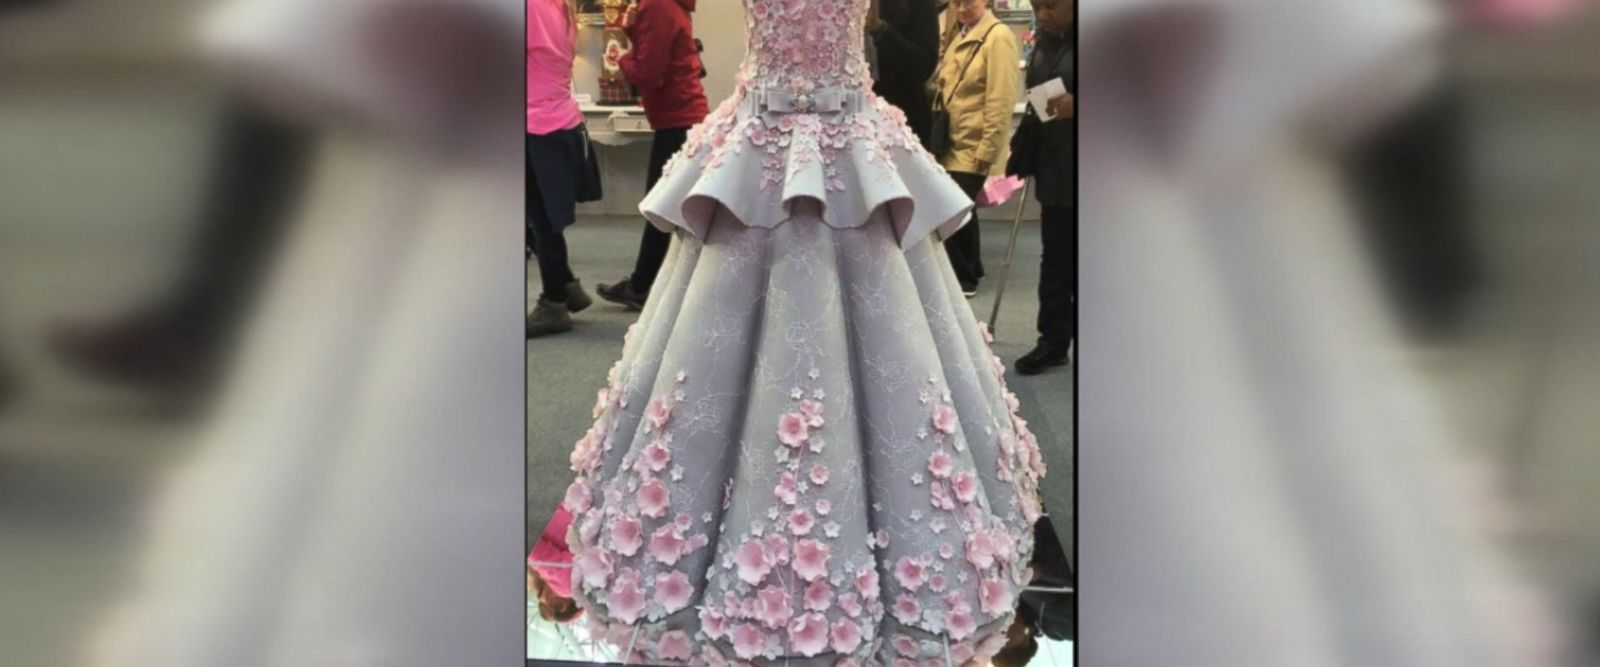 Emma Jayne Cake Design created this cake replica of a real-life Mak Tumang wedding dress using 132 pounds of fondant.